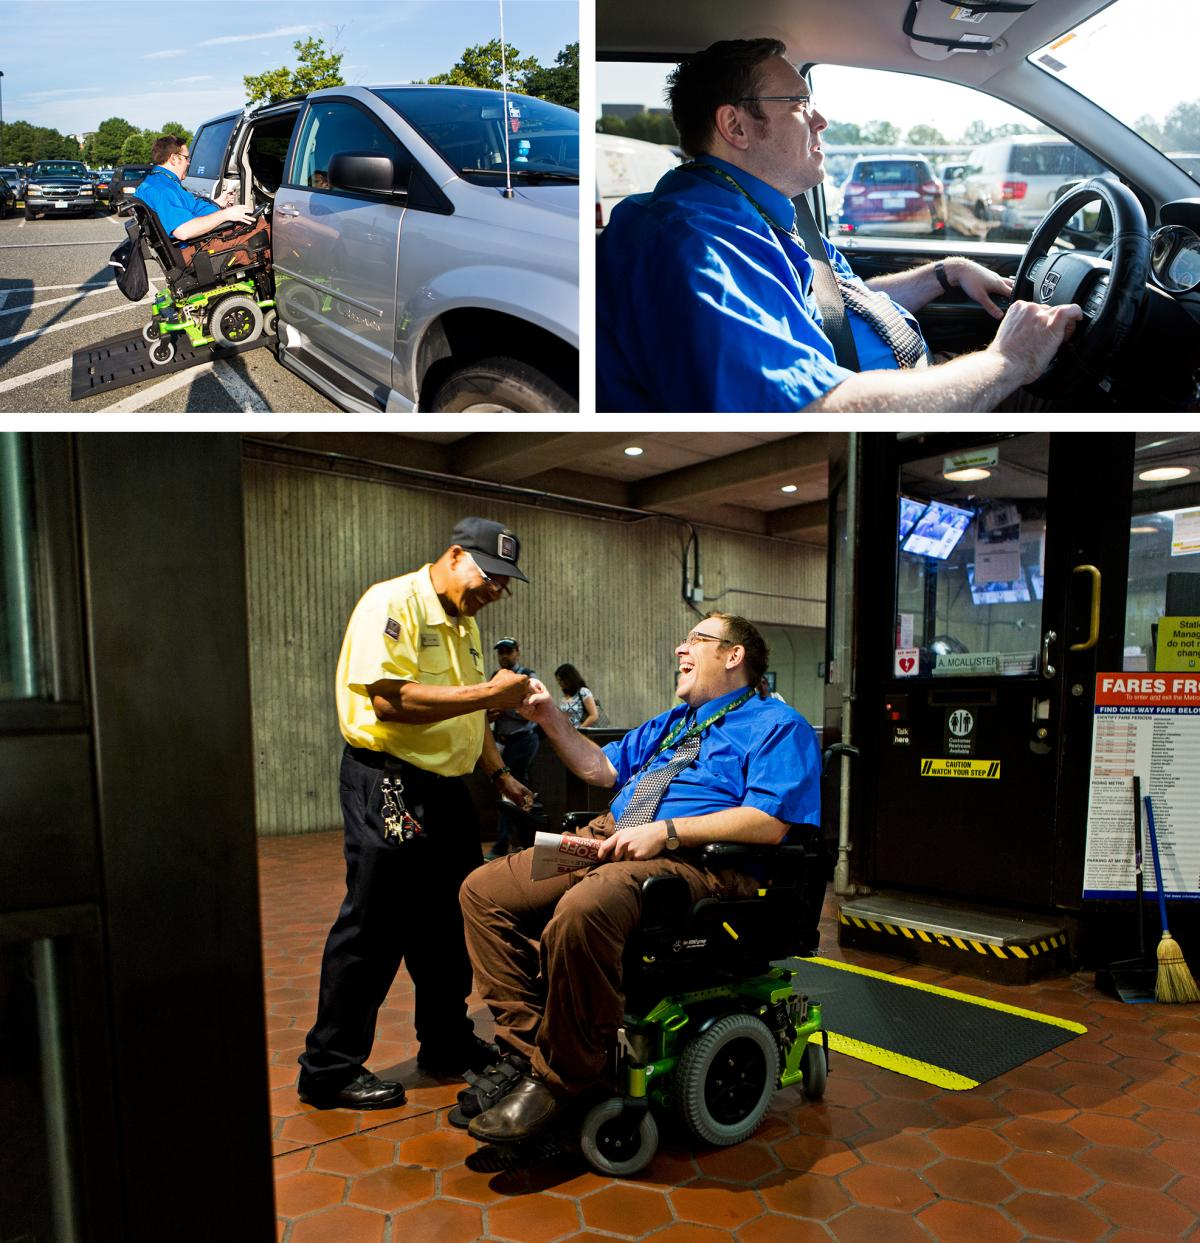 (Top left) Olsen re-enters his van to drive to an alternative Metro entrance after learning that one of the elevators is not working. (Top right) Olsen often leaves for work early to avoid crowded cars during rush hour. (Bottom) Olsen greets Metro station